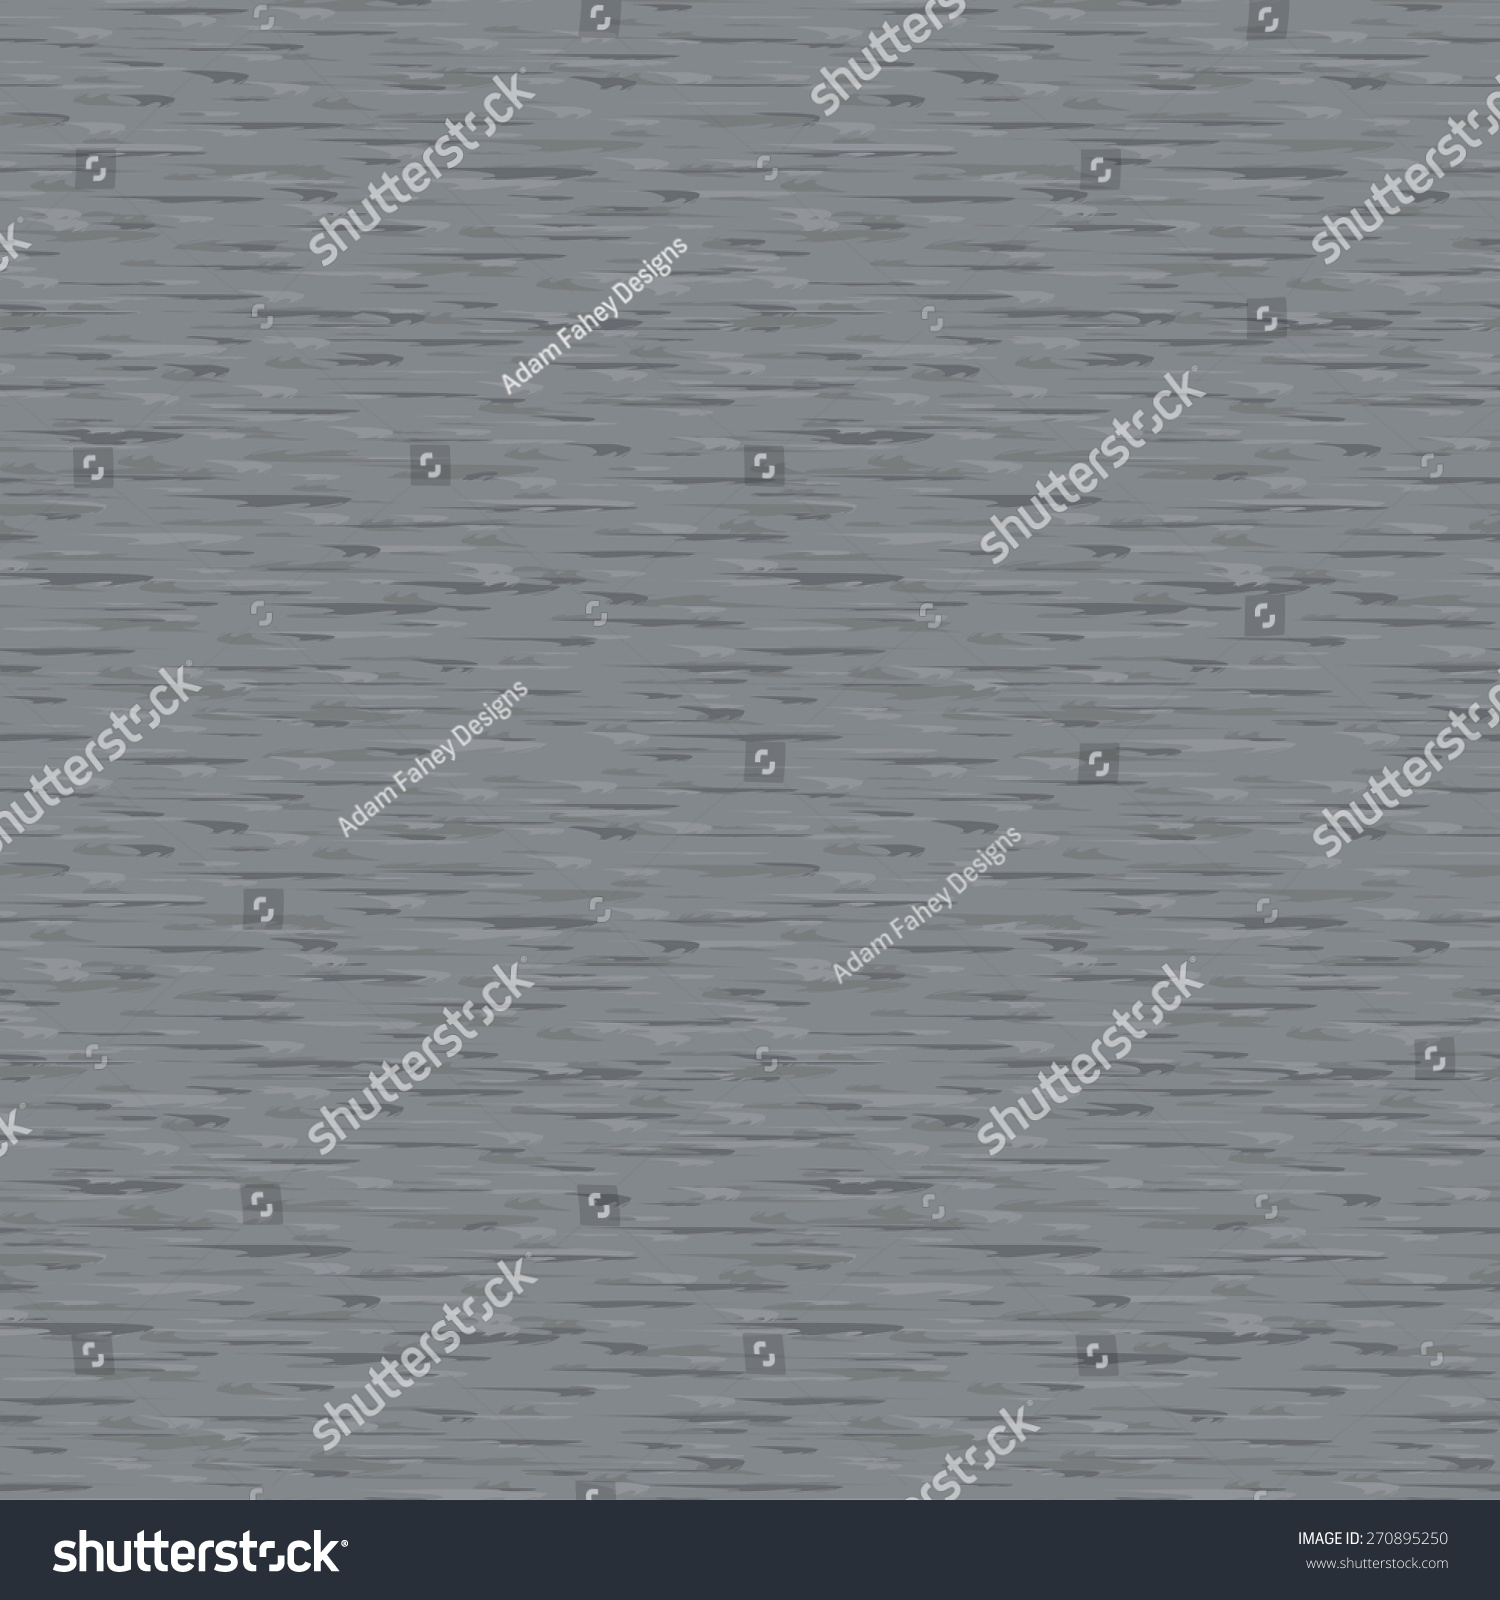 Mid Grey Marle Fabric Texture Seamless Stock Illustration ... for Grey Fabric Texture Seamless  26bof